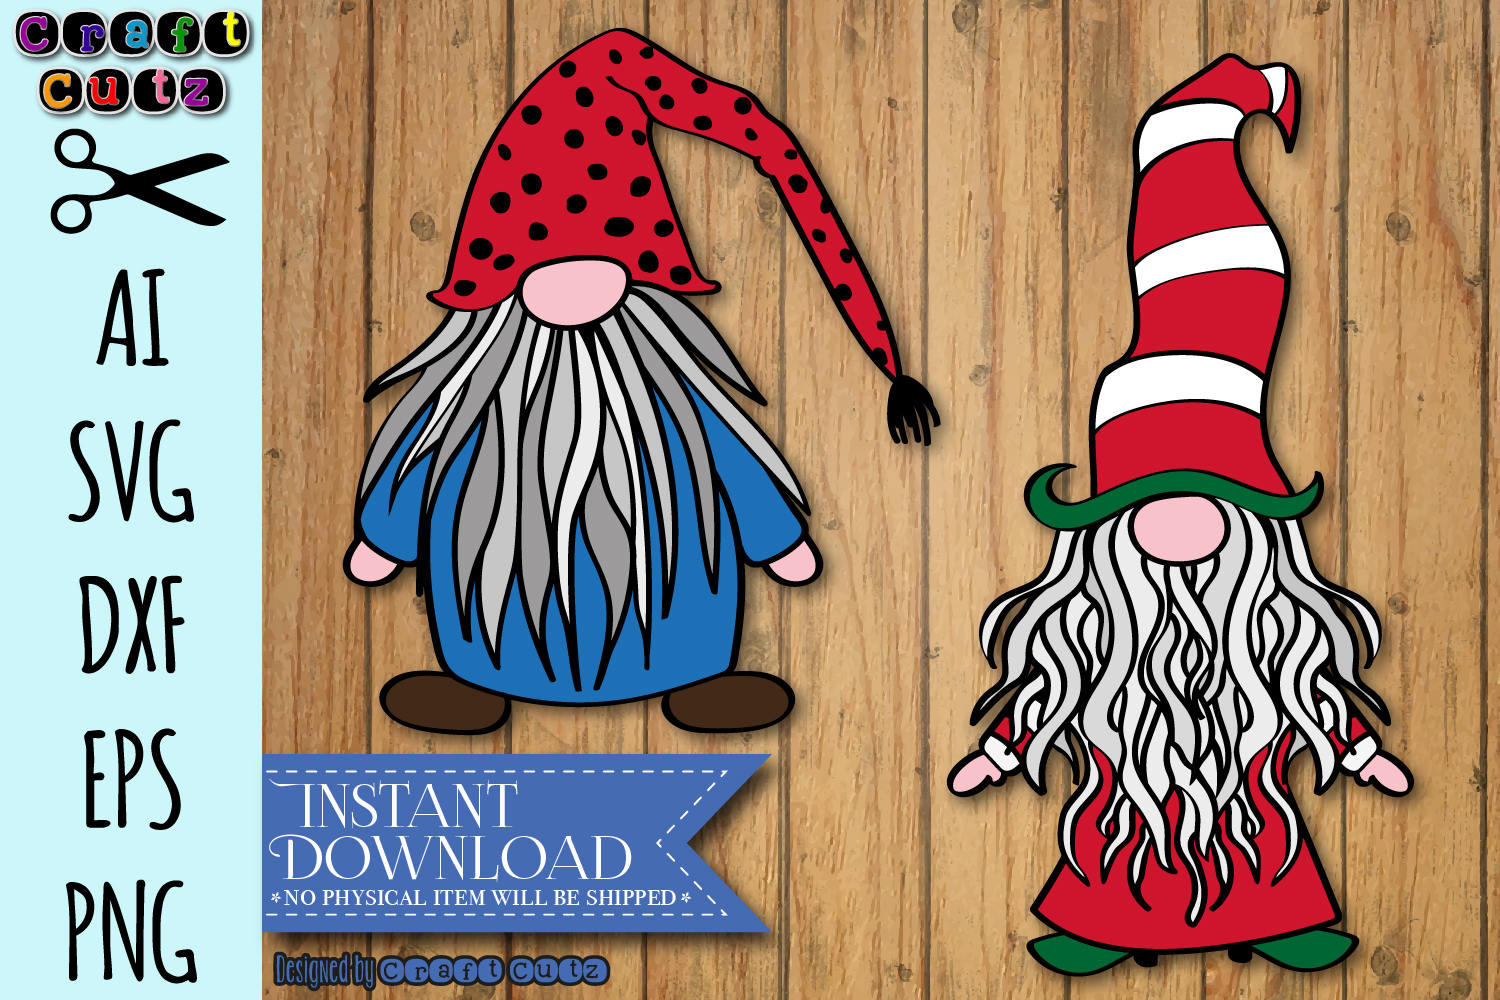 Cute Gnome SVG, Christmas Gnome, Gnome with Striped Hat svg example image 1